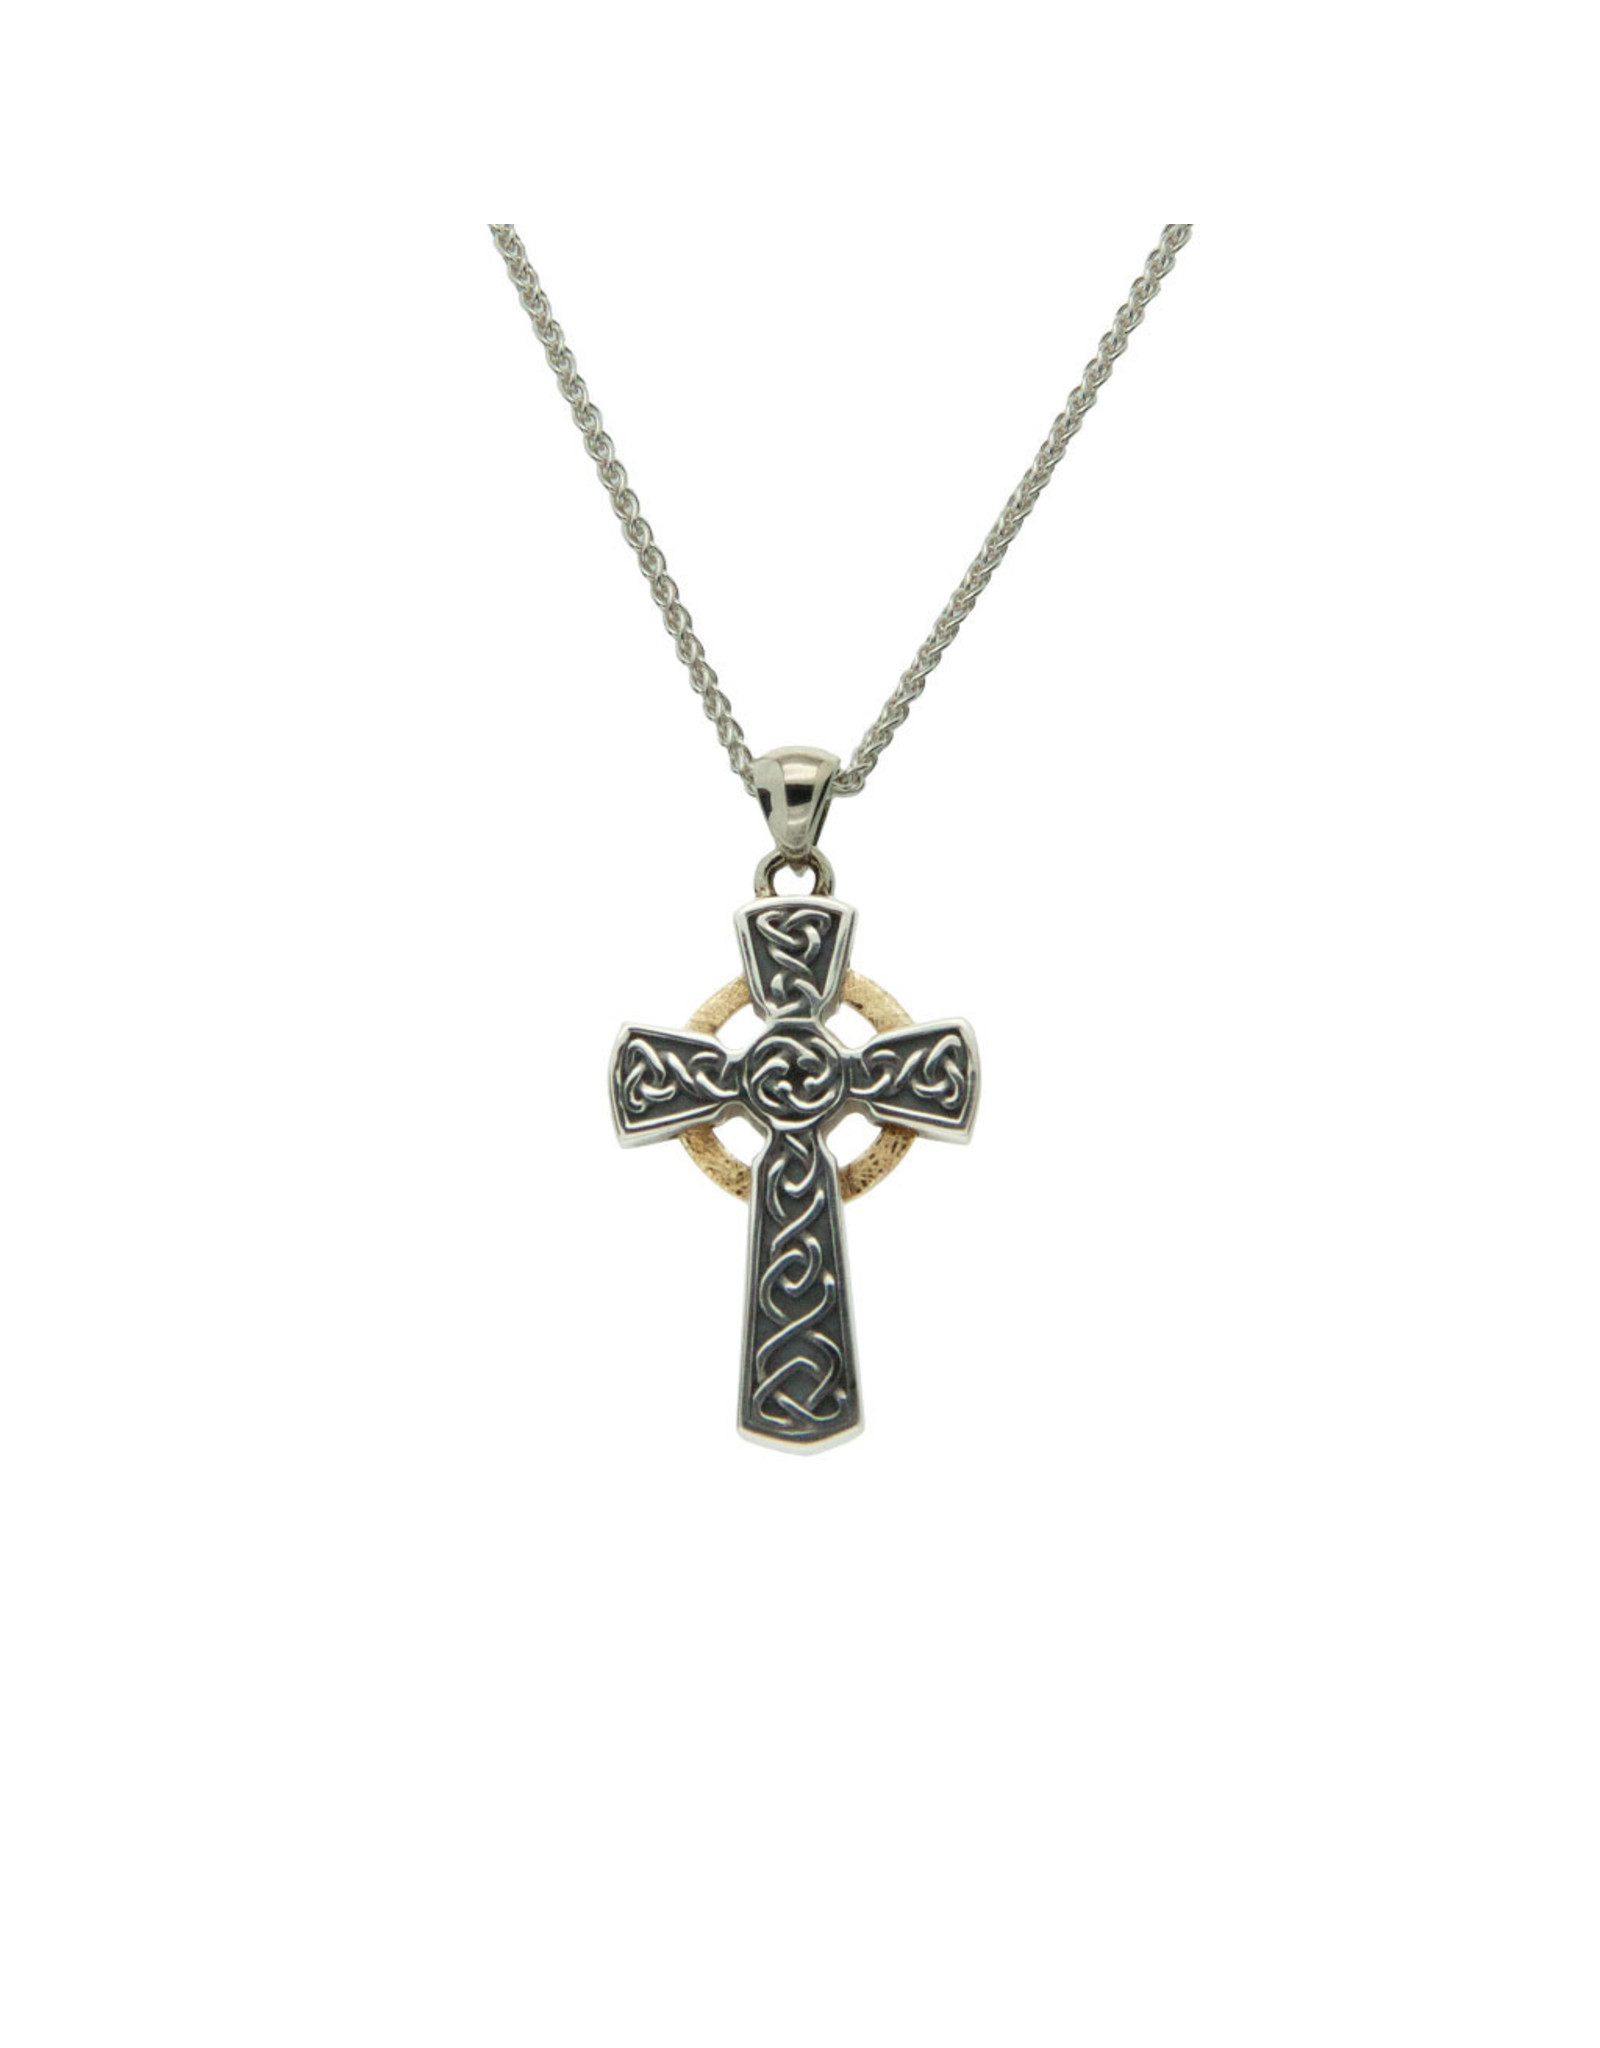 Keith Jack Oxidized Silver + 10k Gold Celtic Cross Small Pendant